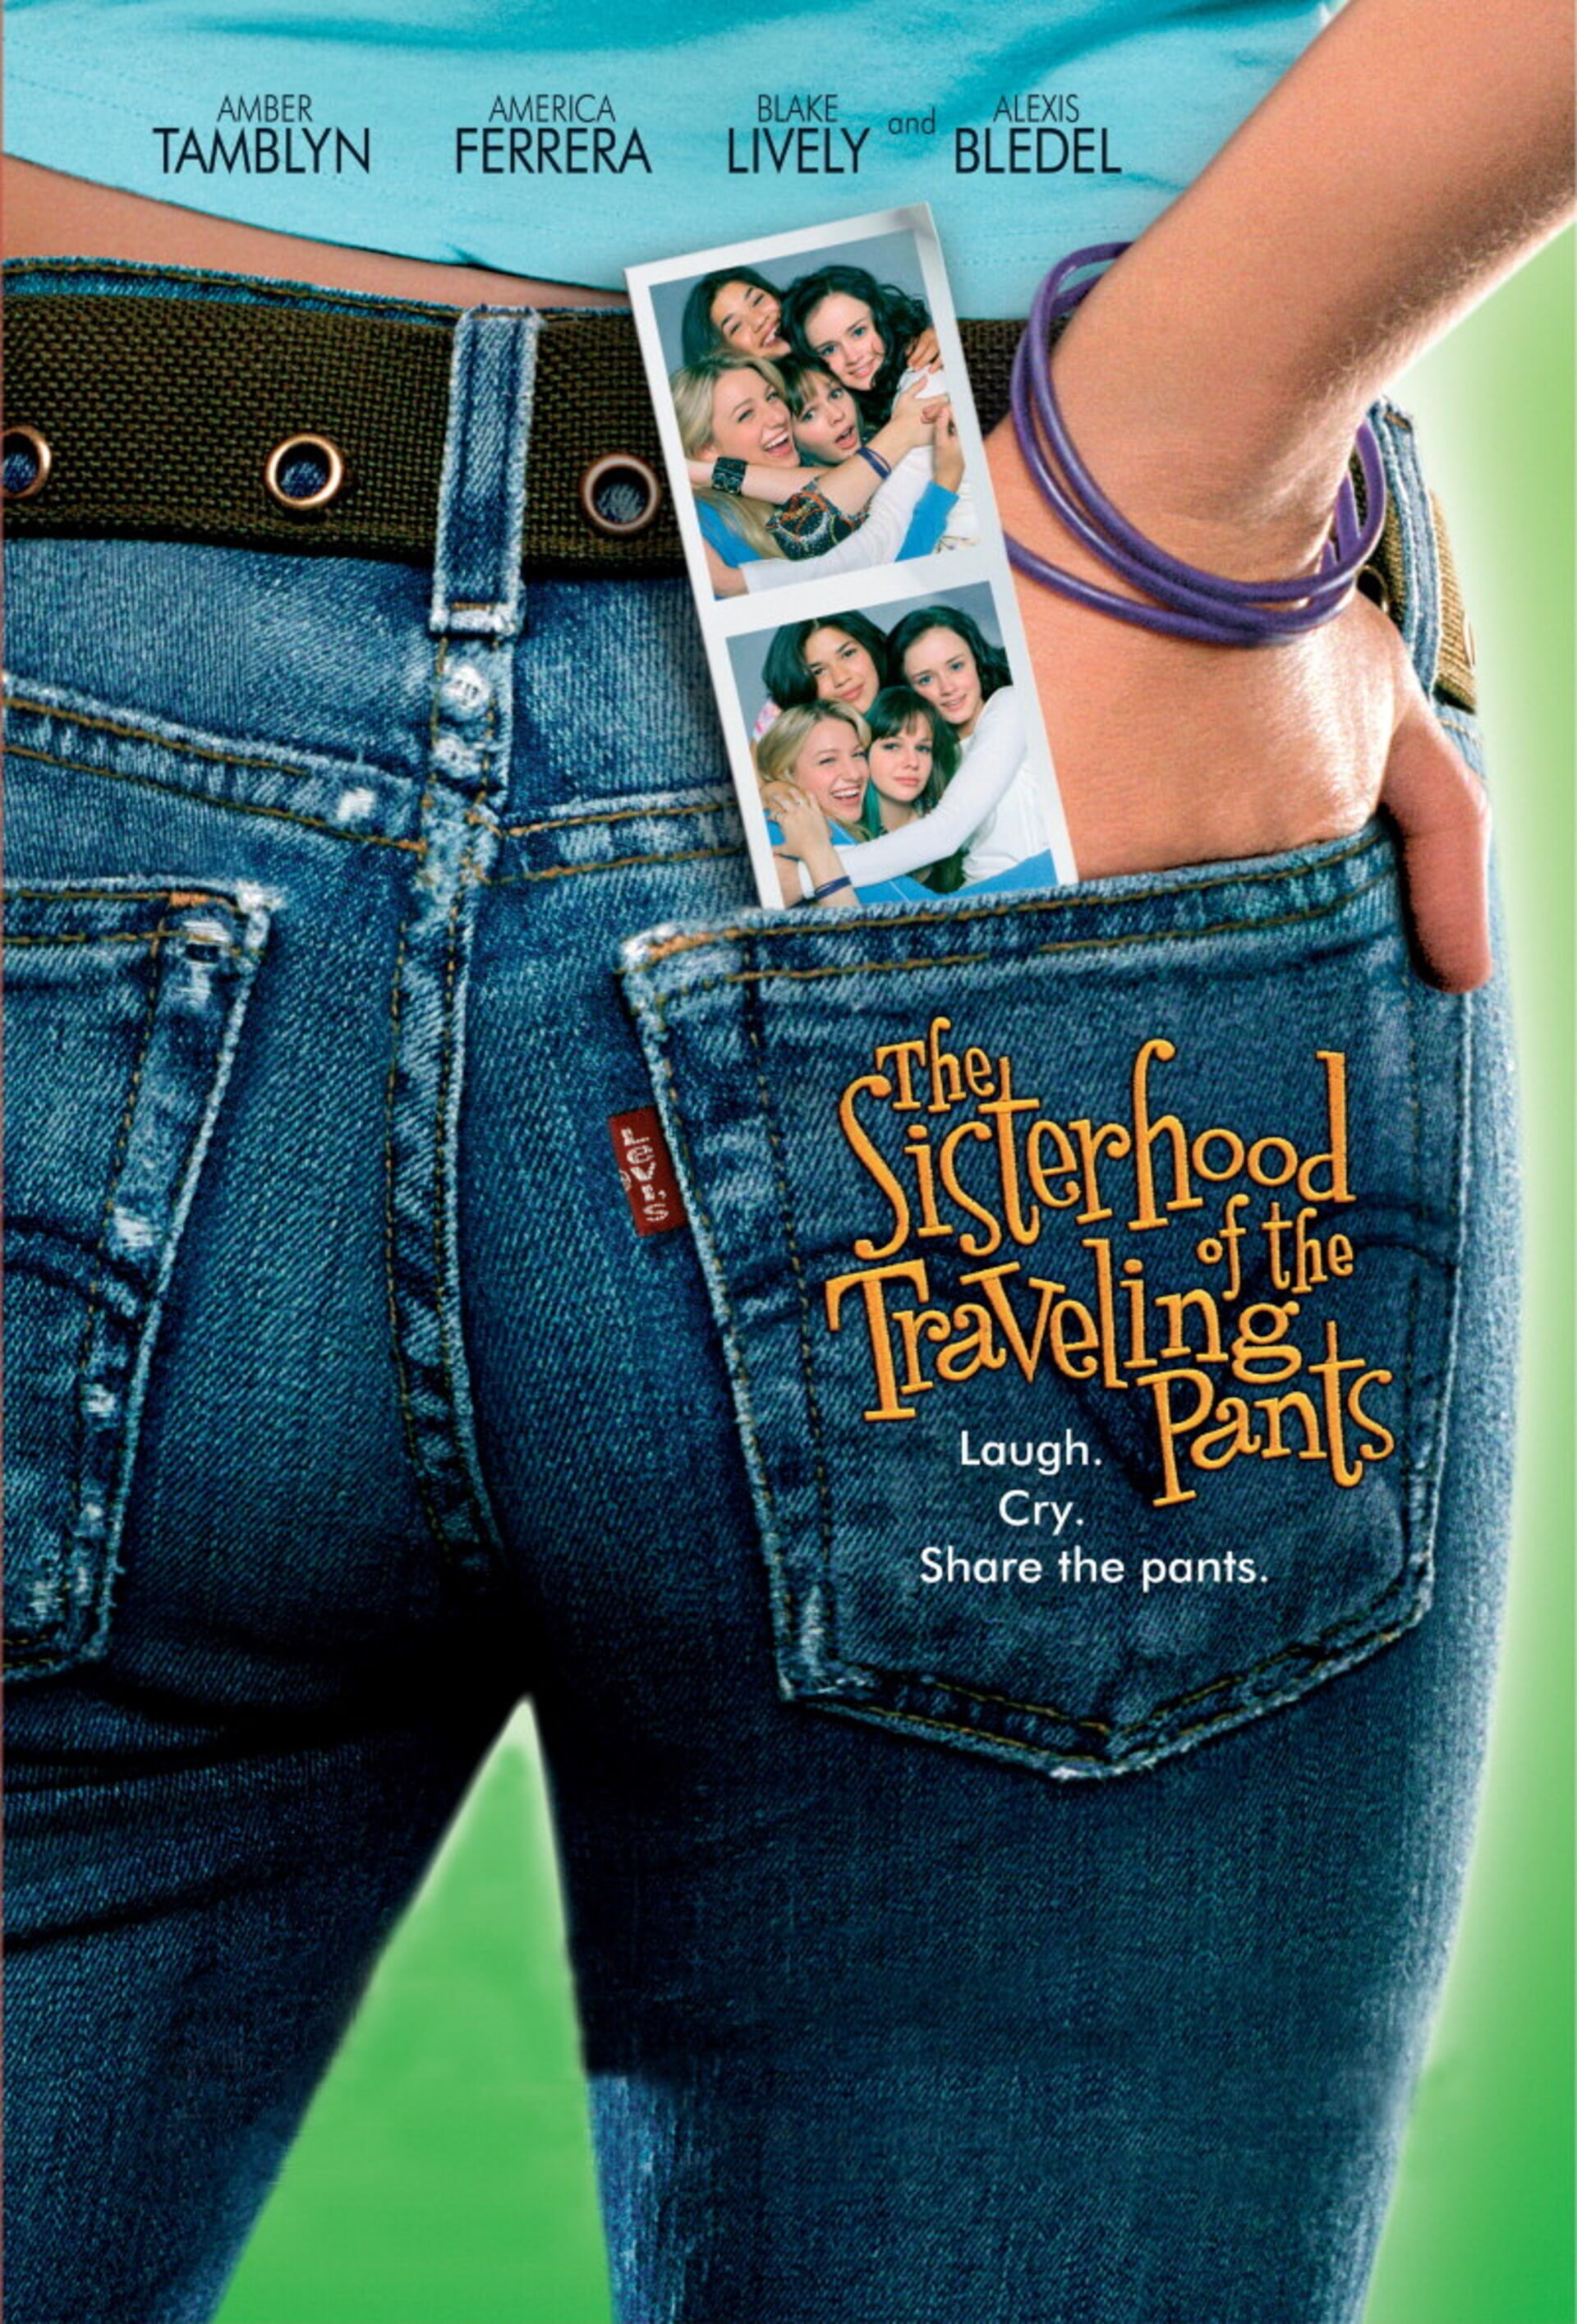 The Sisterhood of the Traveling Pants - Poster 1